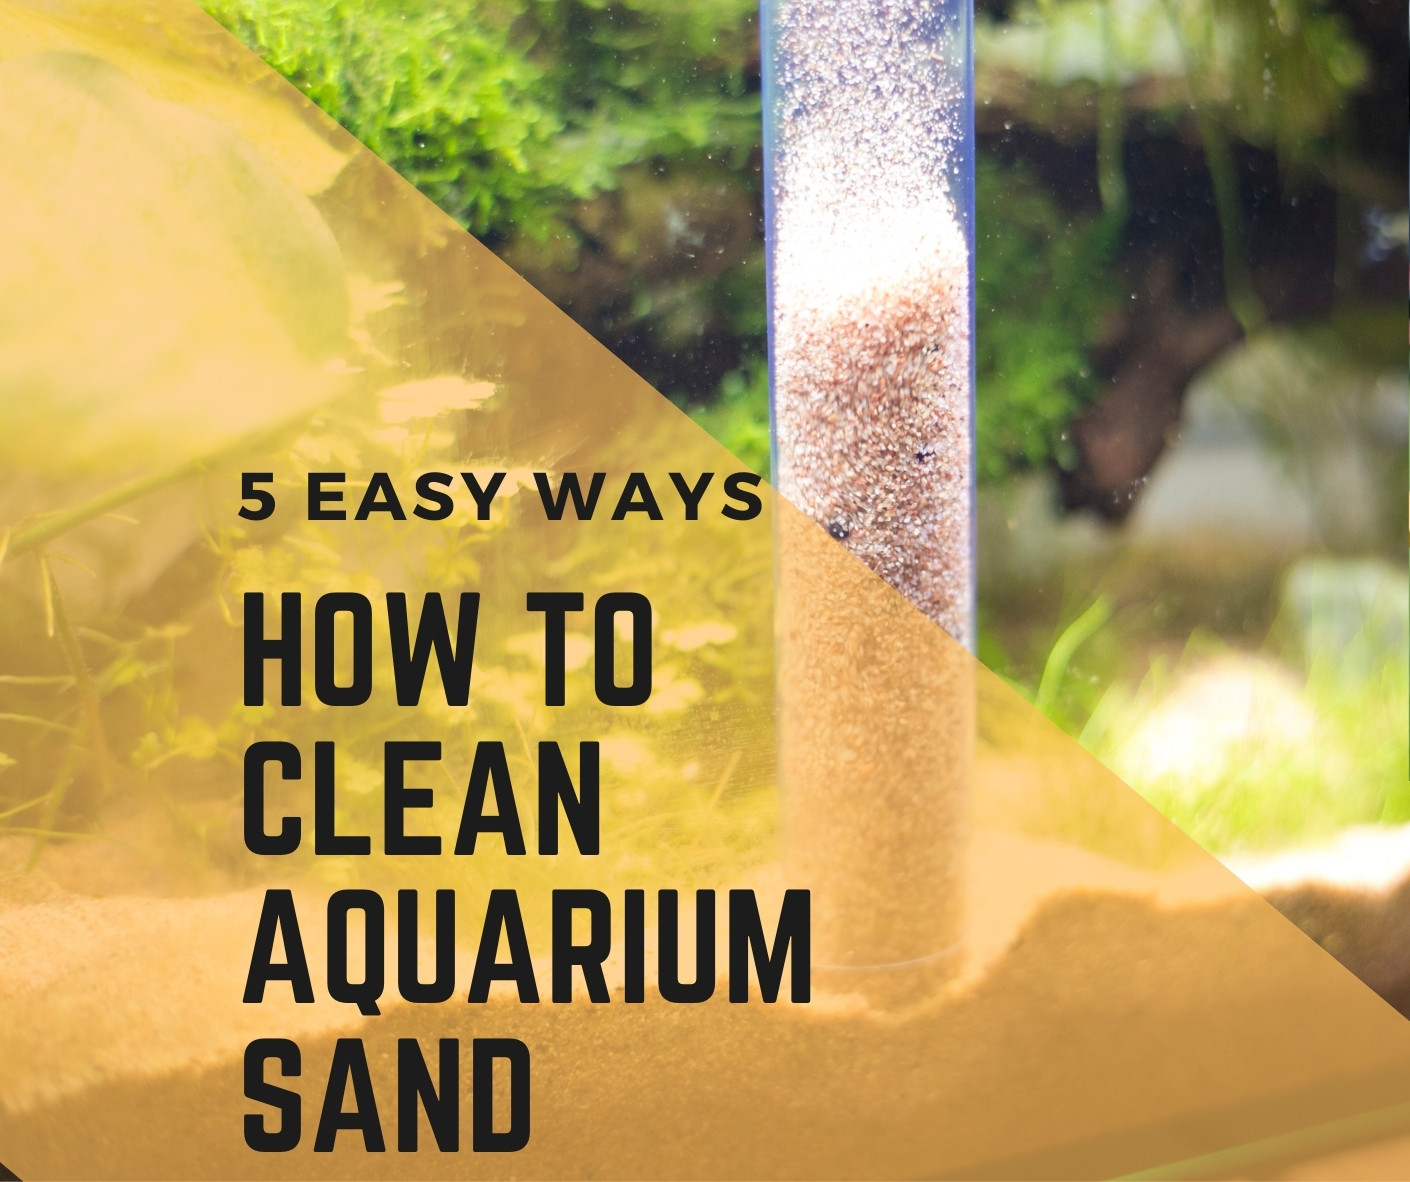 How to Clean Aquarium Sand? 5 Simple Steps (With Pictures)